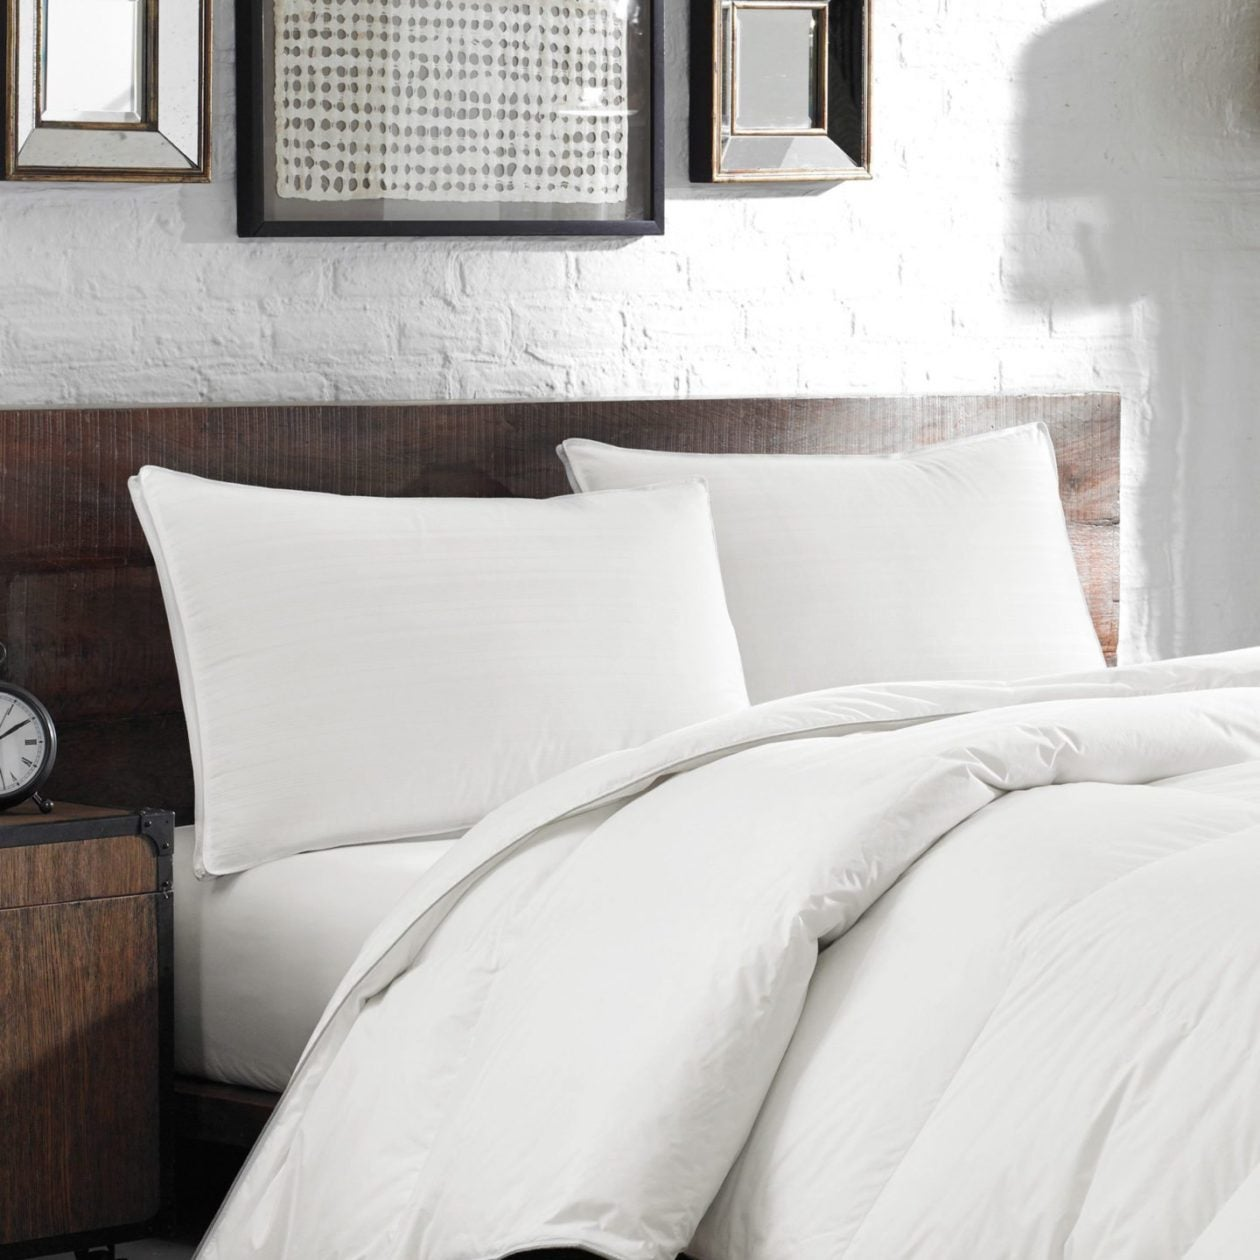 white pillows and white down bedding on brown bedrame